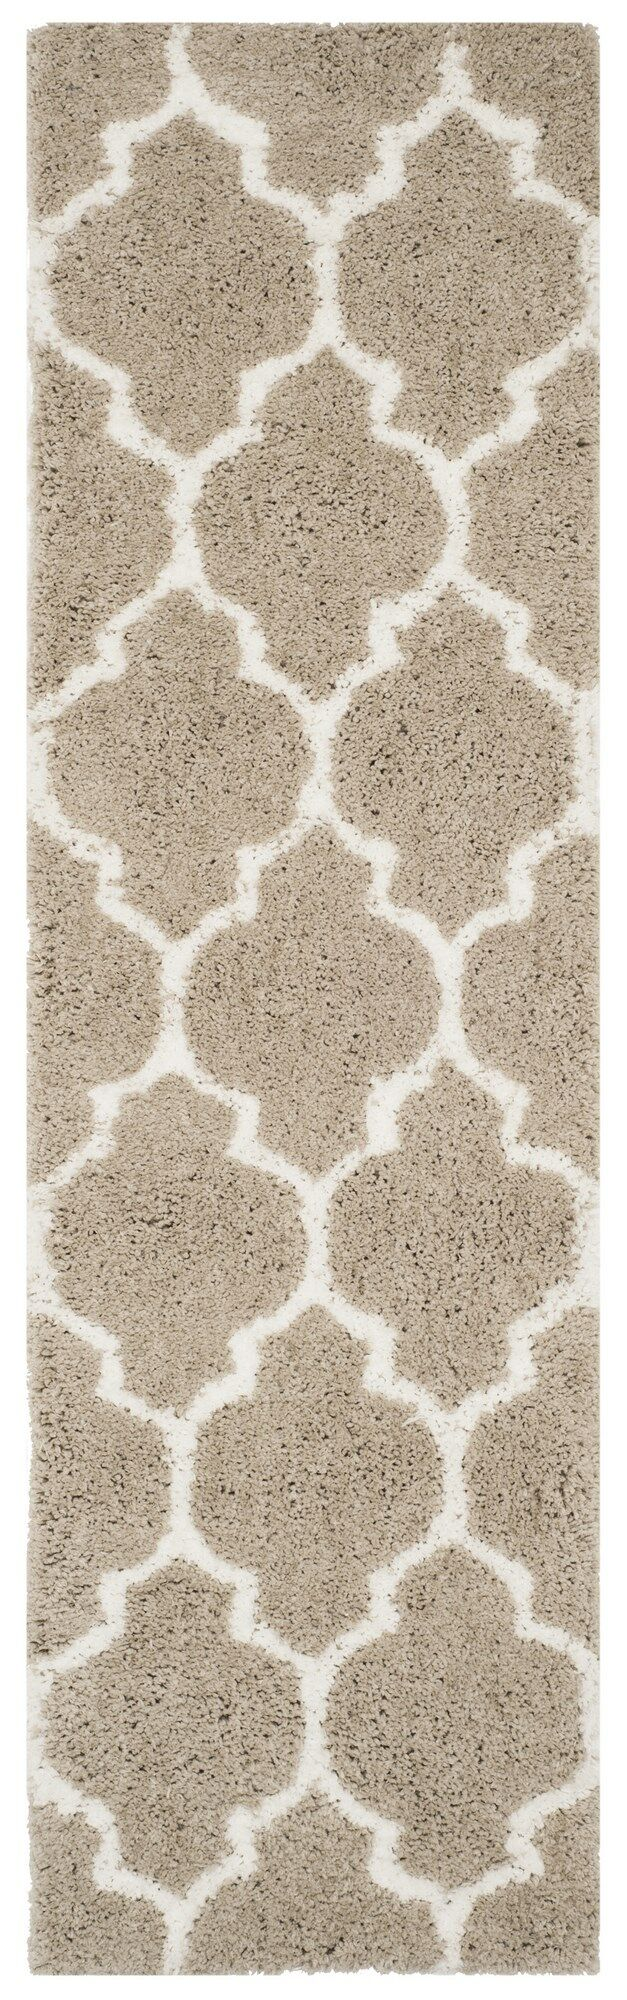 Parnassus Hand-Tufted Silver/Ivory Area Rug Rug Size: Runner 2'3